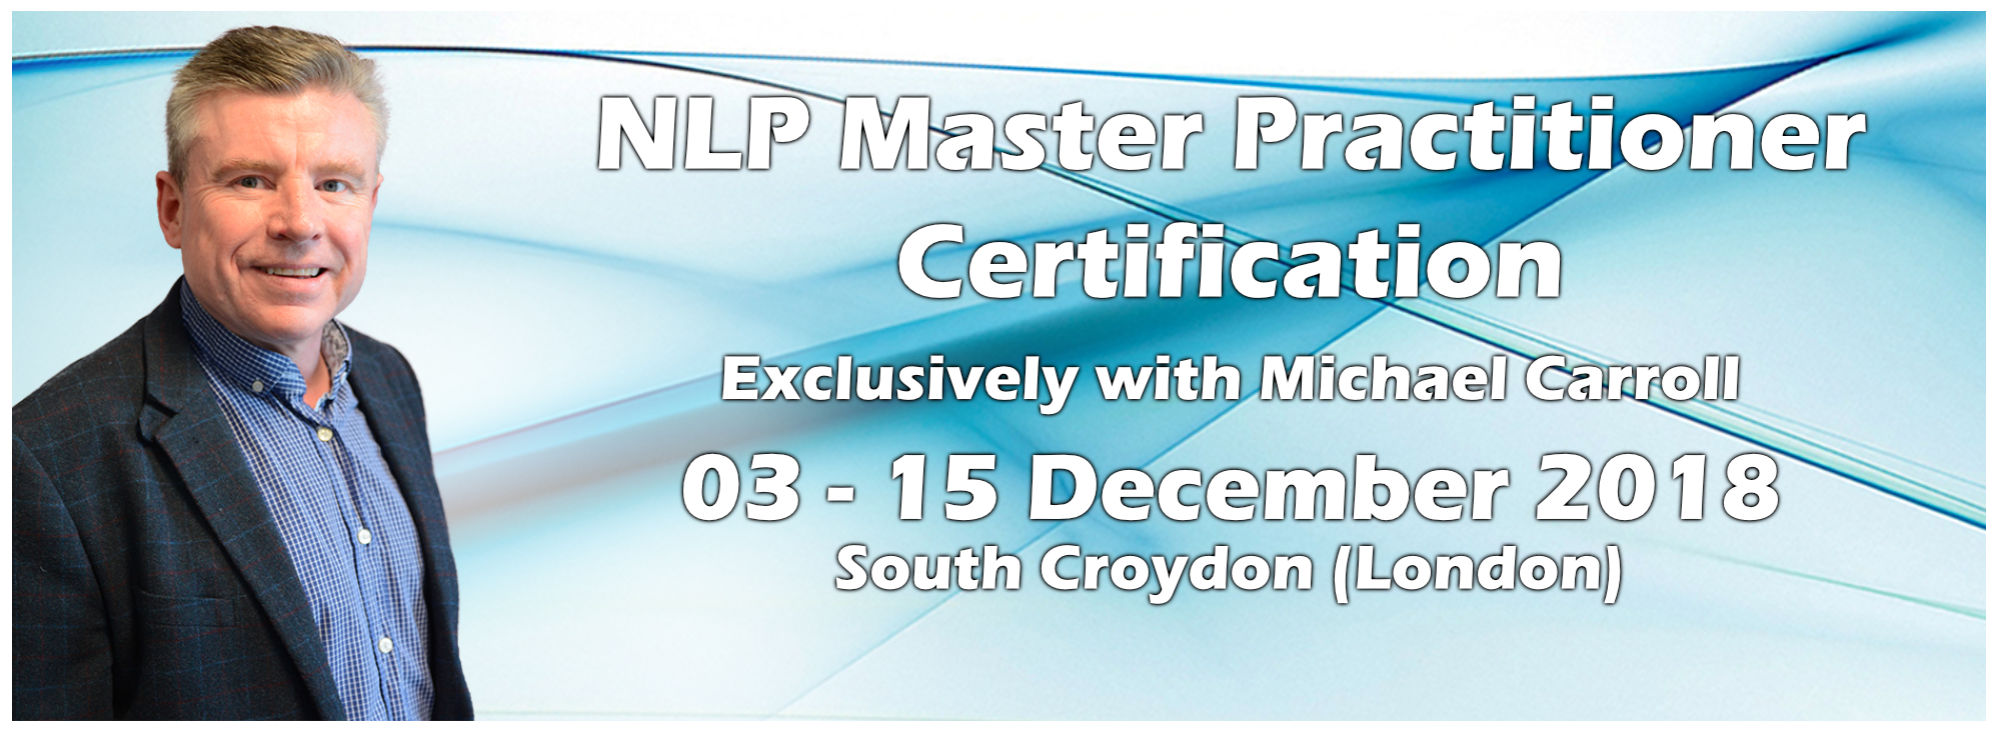 NLP Master Practitioner Certification (London)